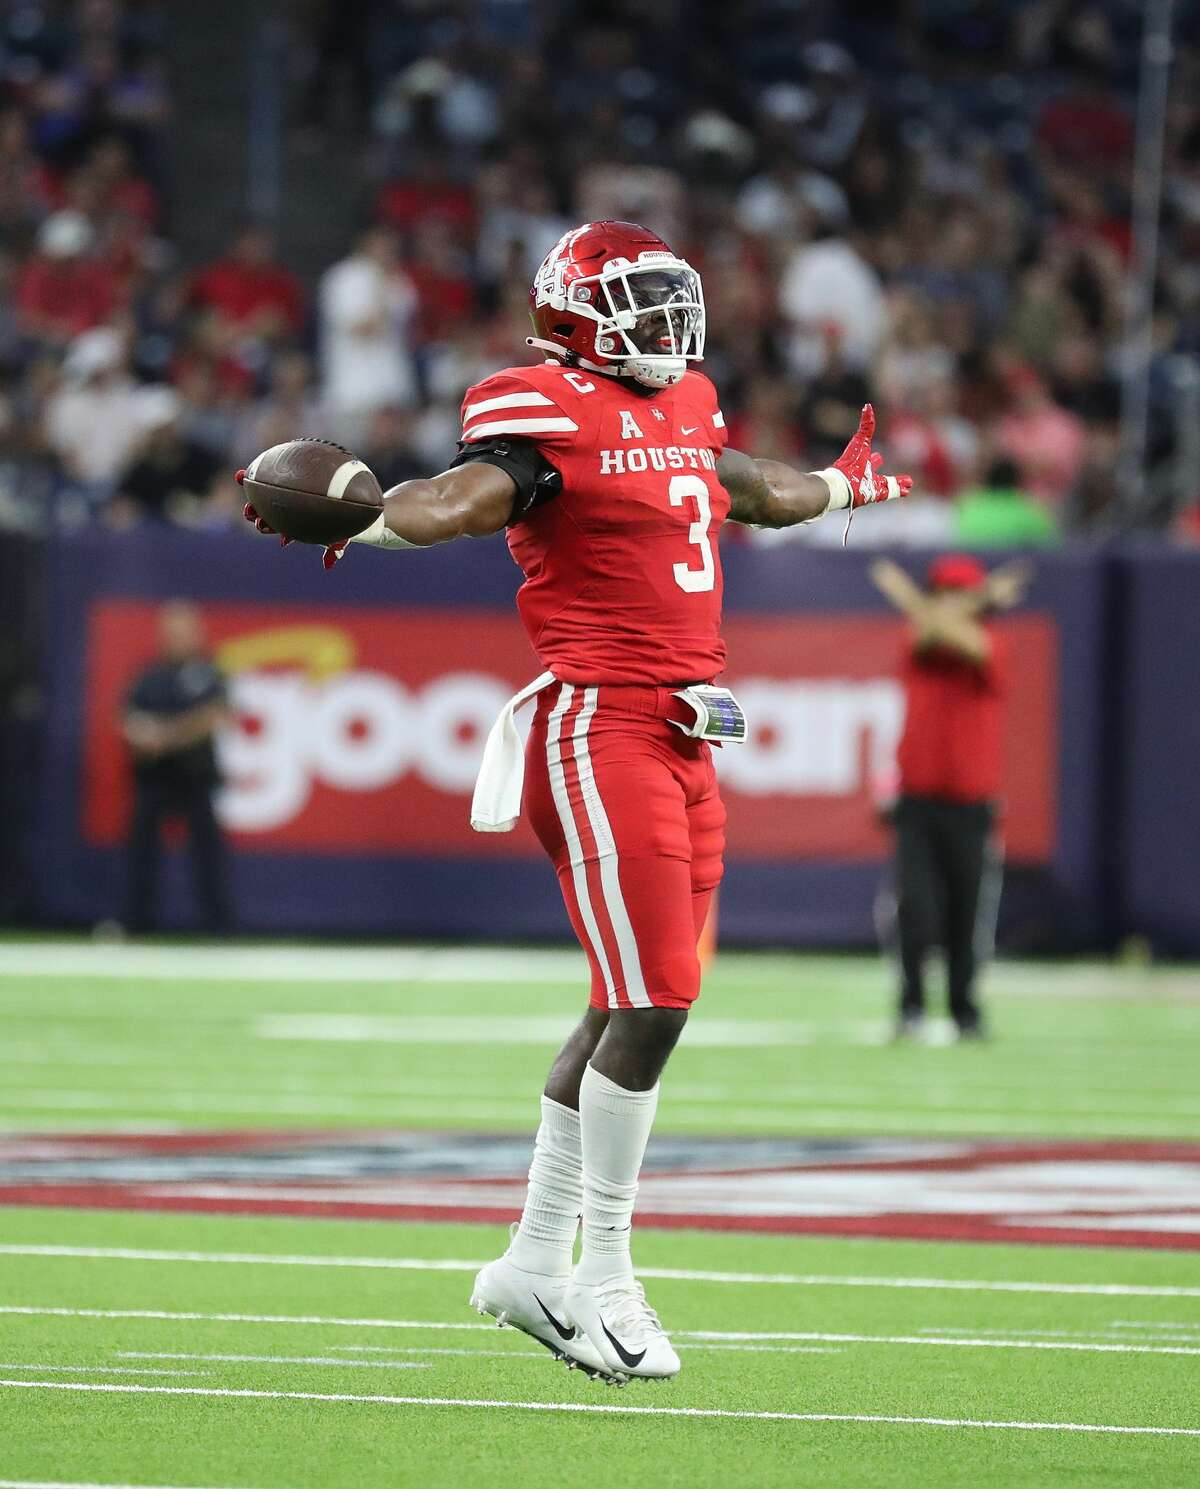 Houston Cougars linebacker Donavan Mutin (3) celebrates a turnover against Texas Tech Red Raiders during the first quarter of the Texas Kickoff college football game at NRG Stadium, Saturday, September 4, 2021, in Houston.